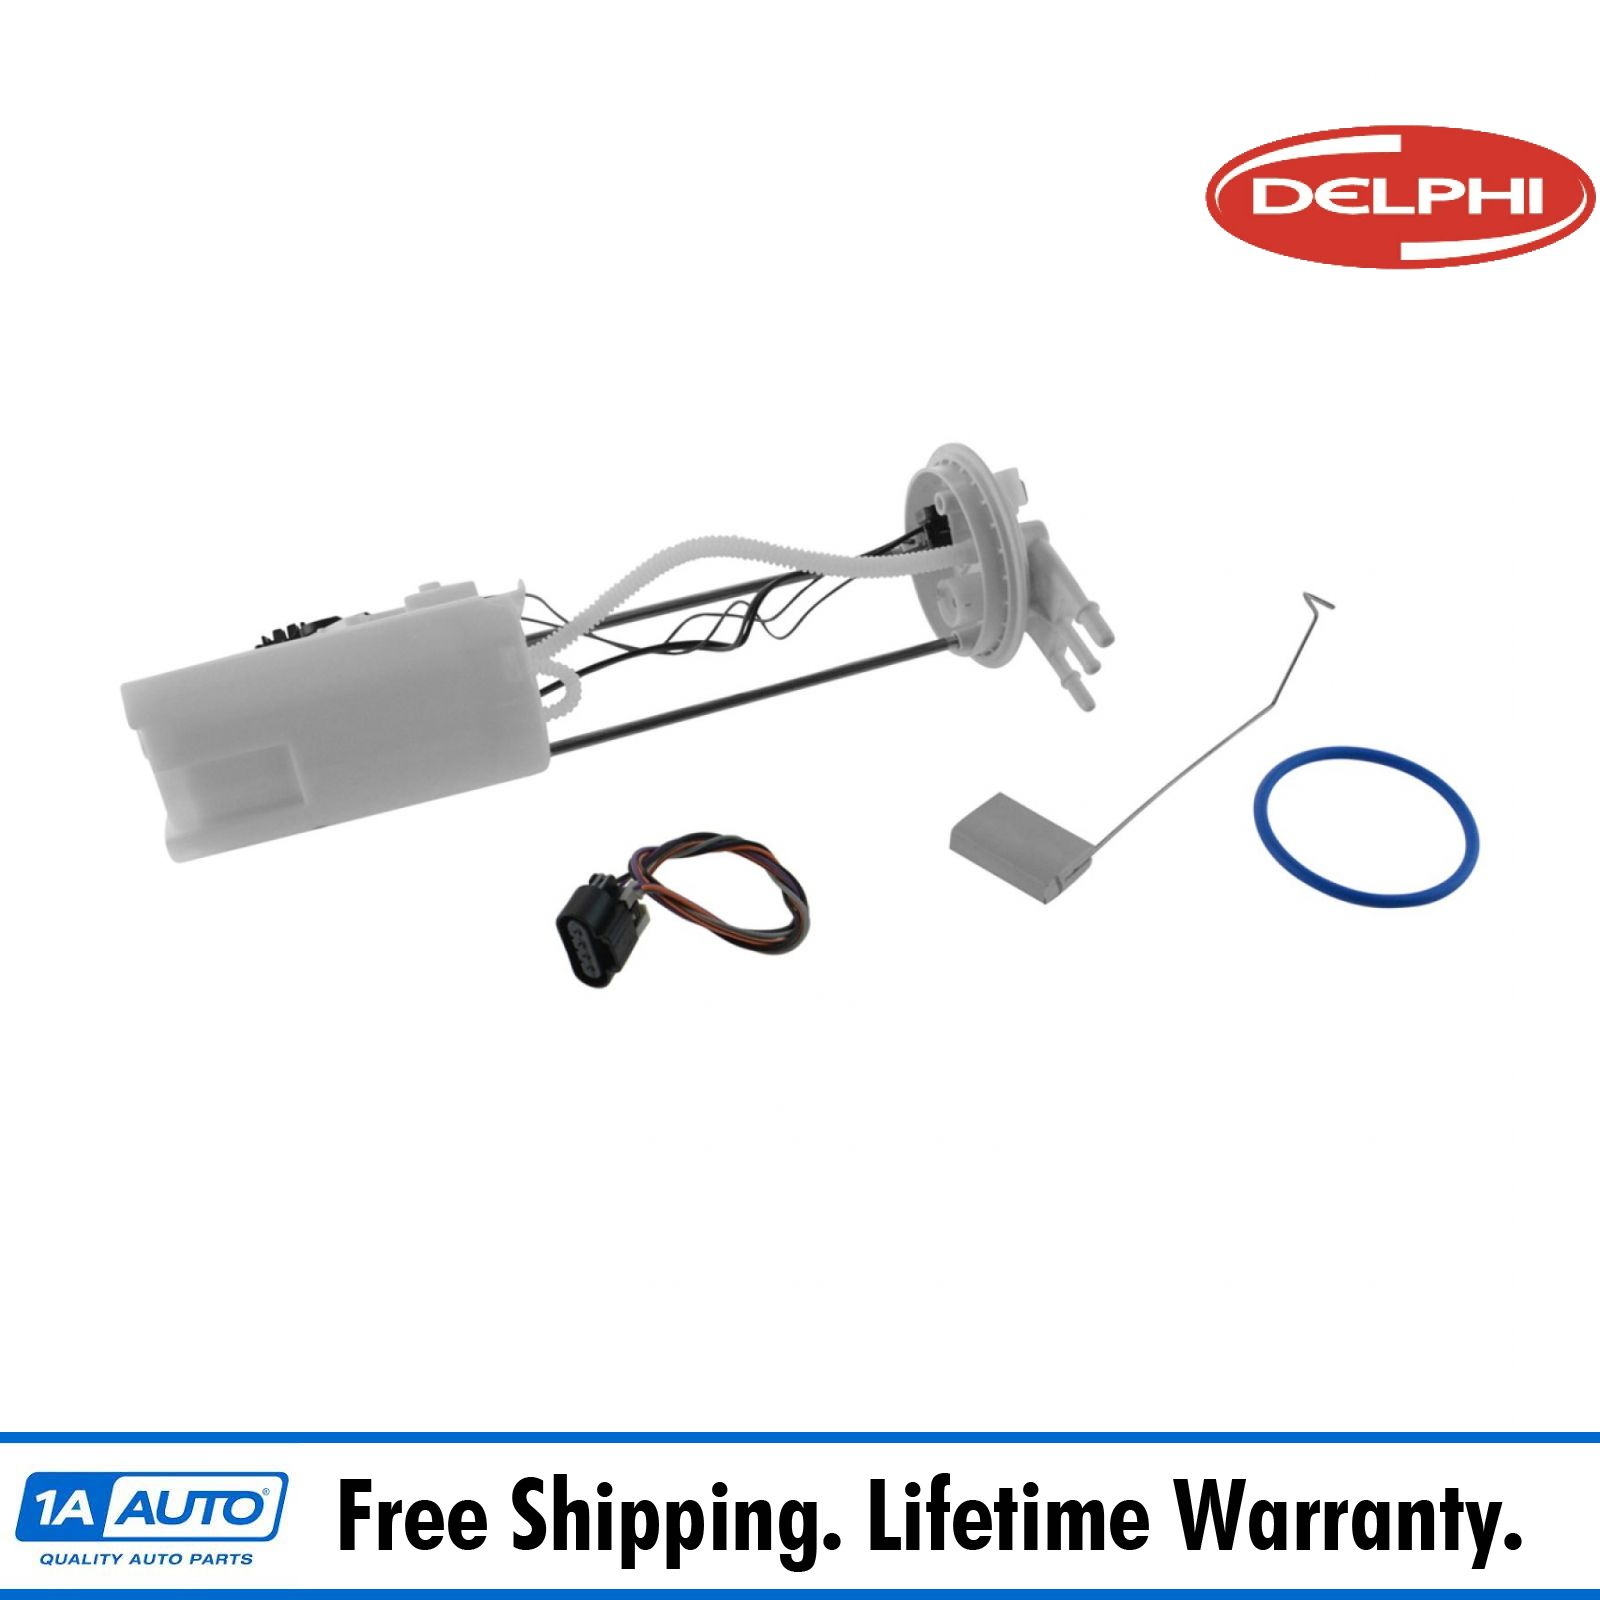 hight resolution of details about delphi fg0085 fuel pump sending unit module assembly for gm pickup truck new